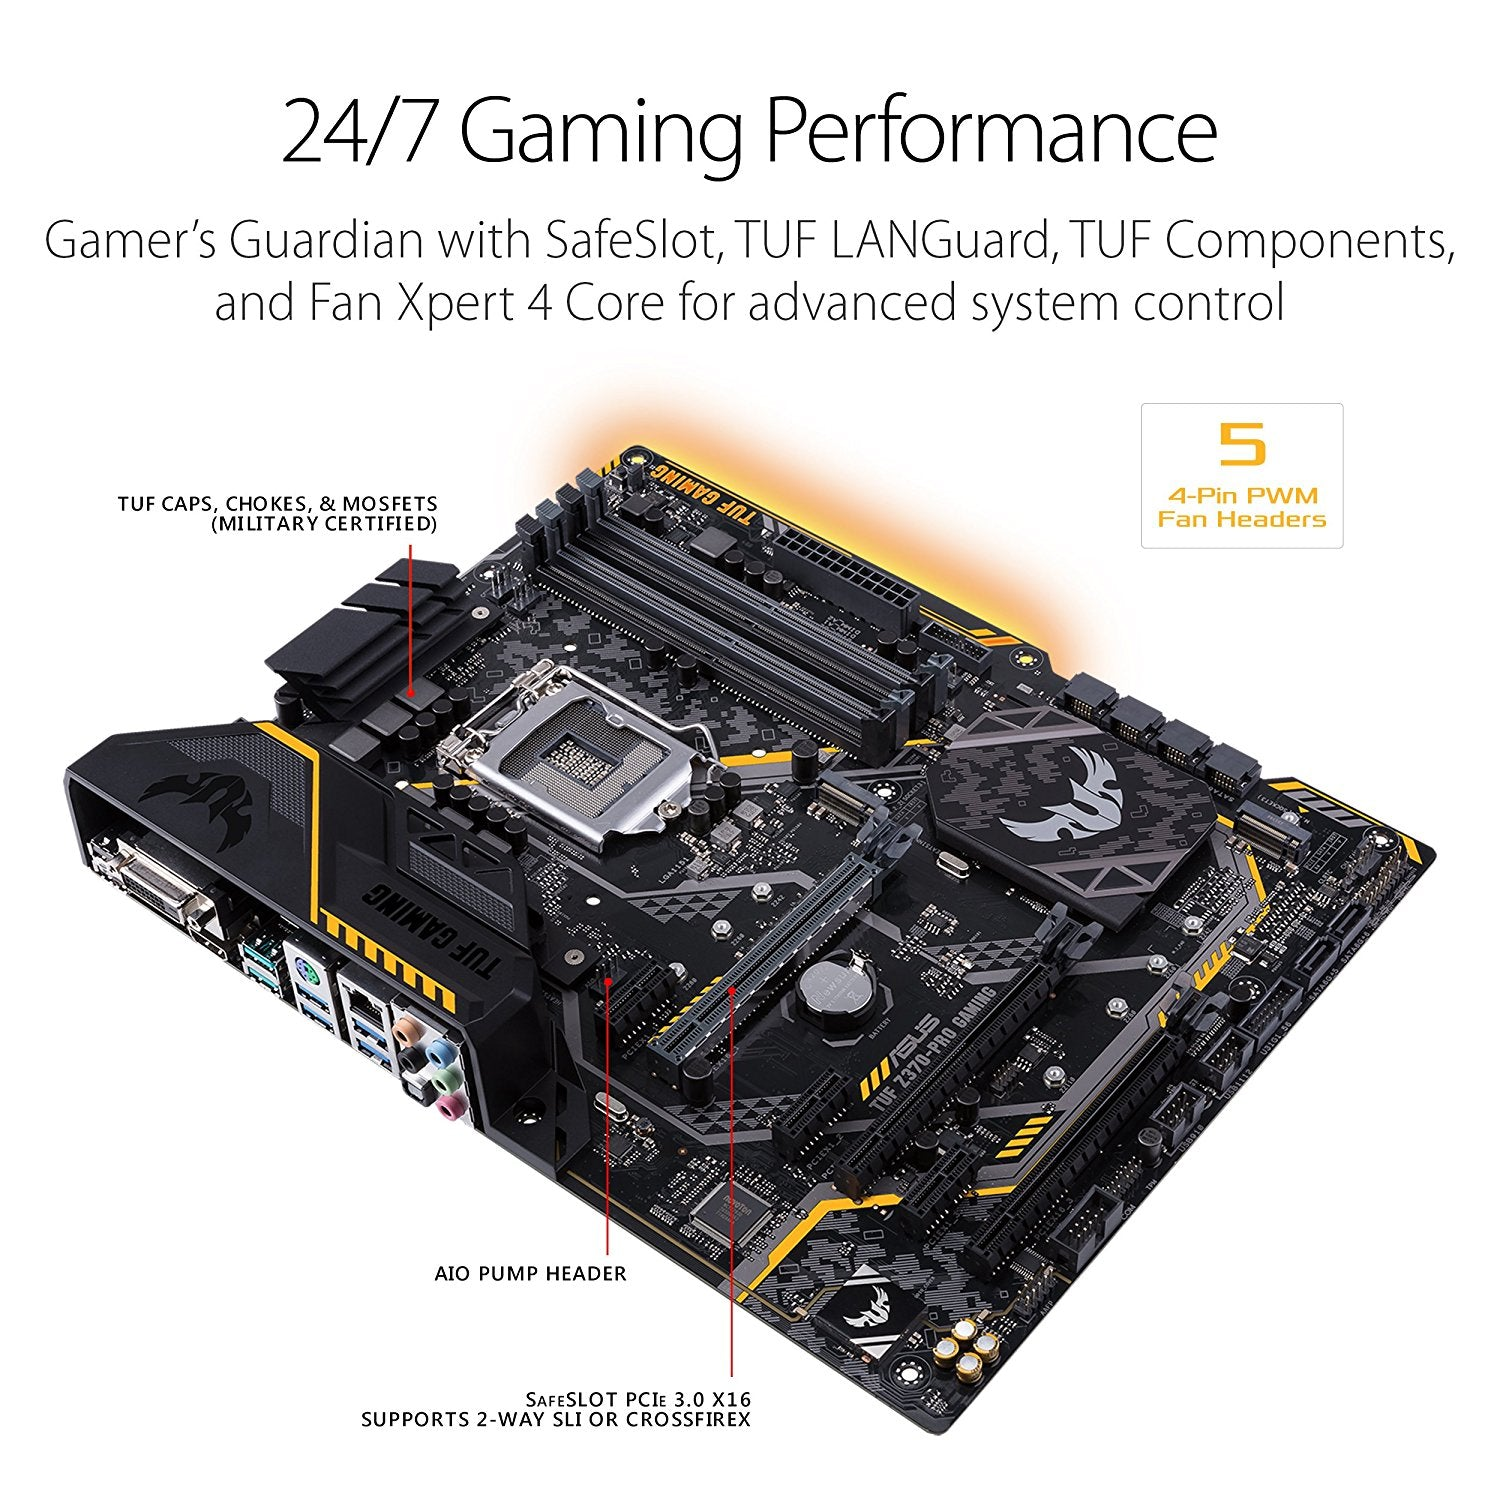 ASUS TUF Z370-PRO GAMING LGA1151 DDR4 HDMI DVI M.2 Z370 ATX Motherboard with Gigabit LAN and USB 3.1 for 8th Generation Intel Core Processors